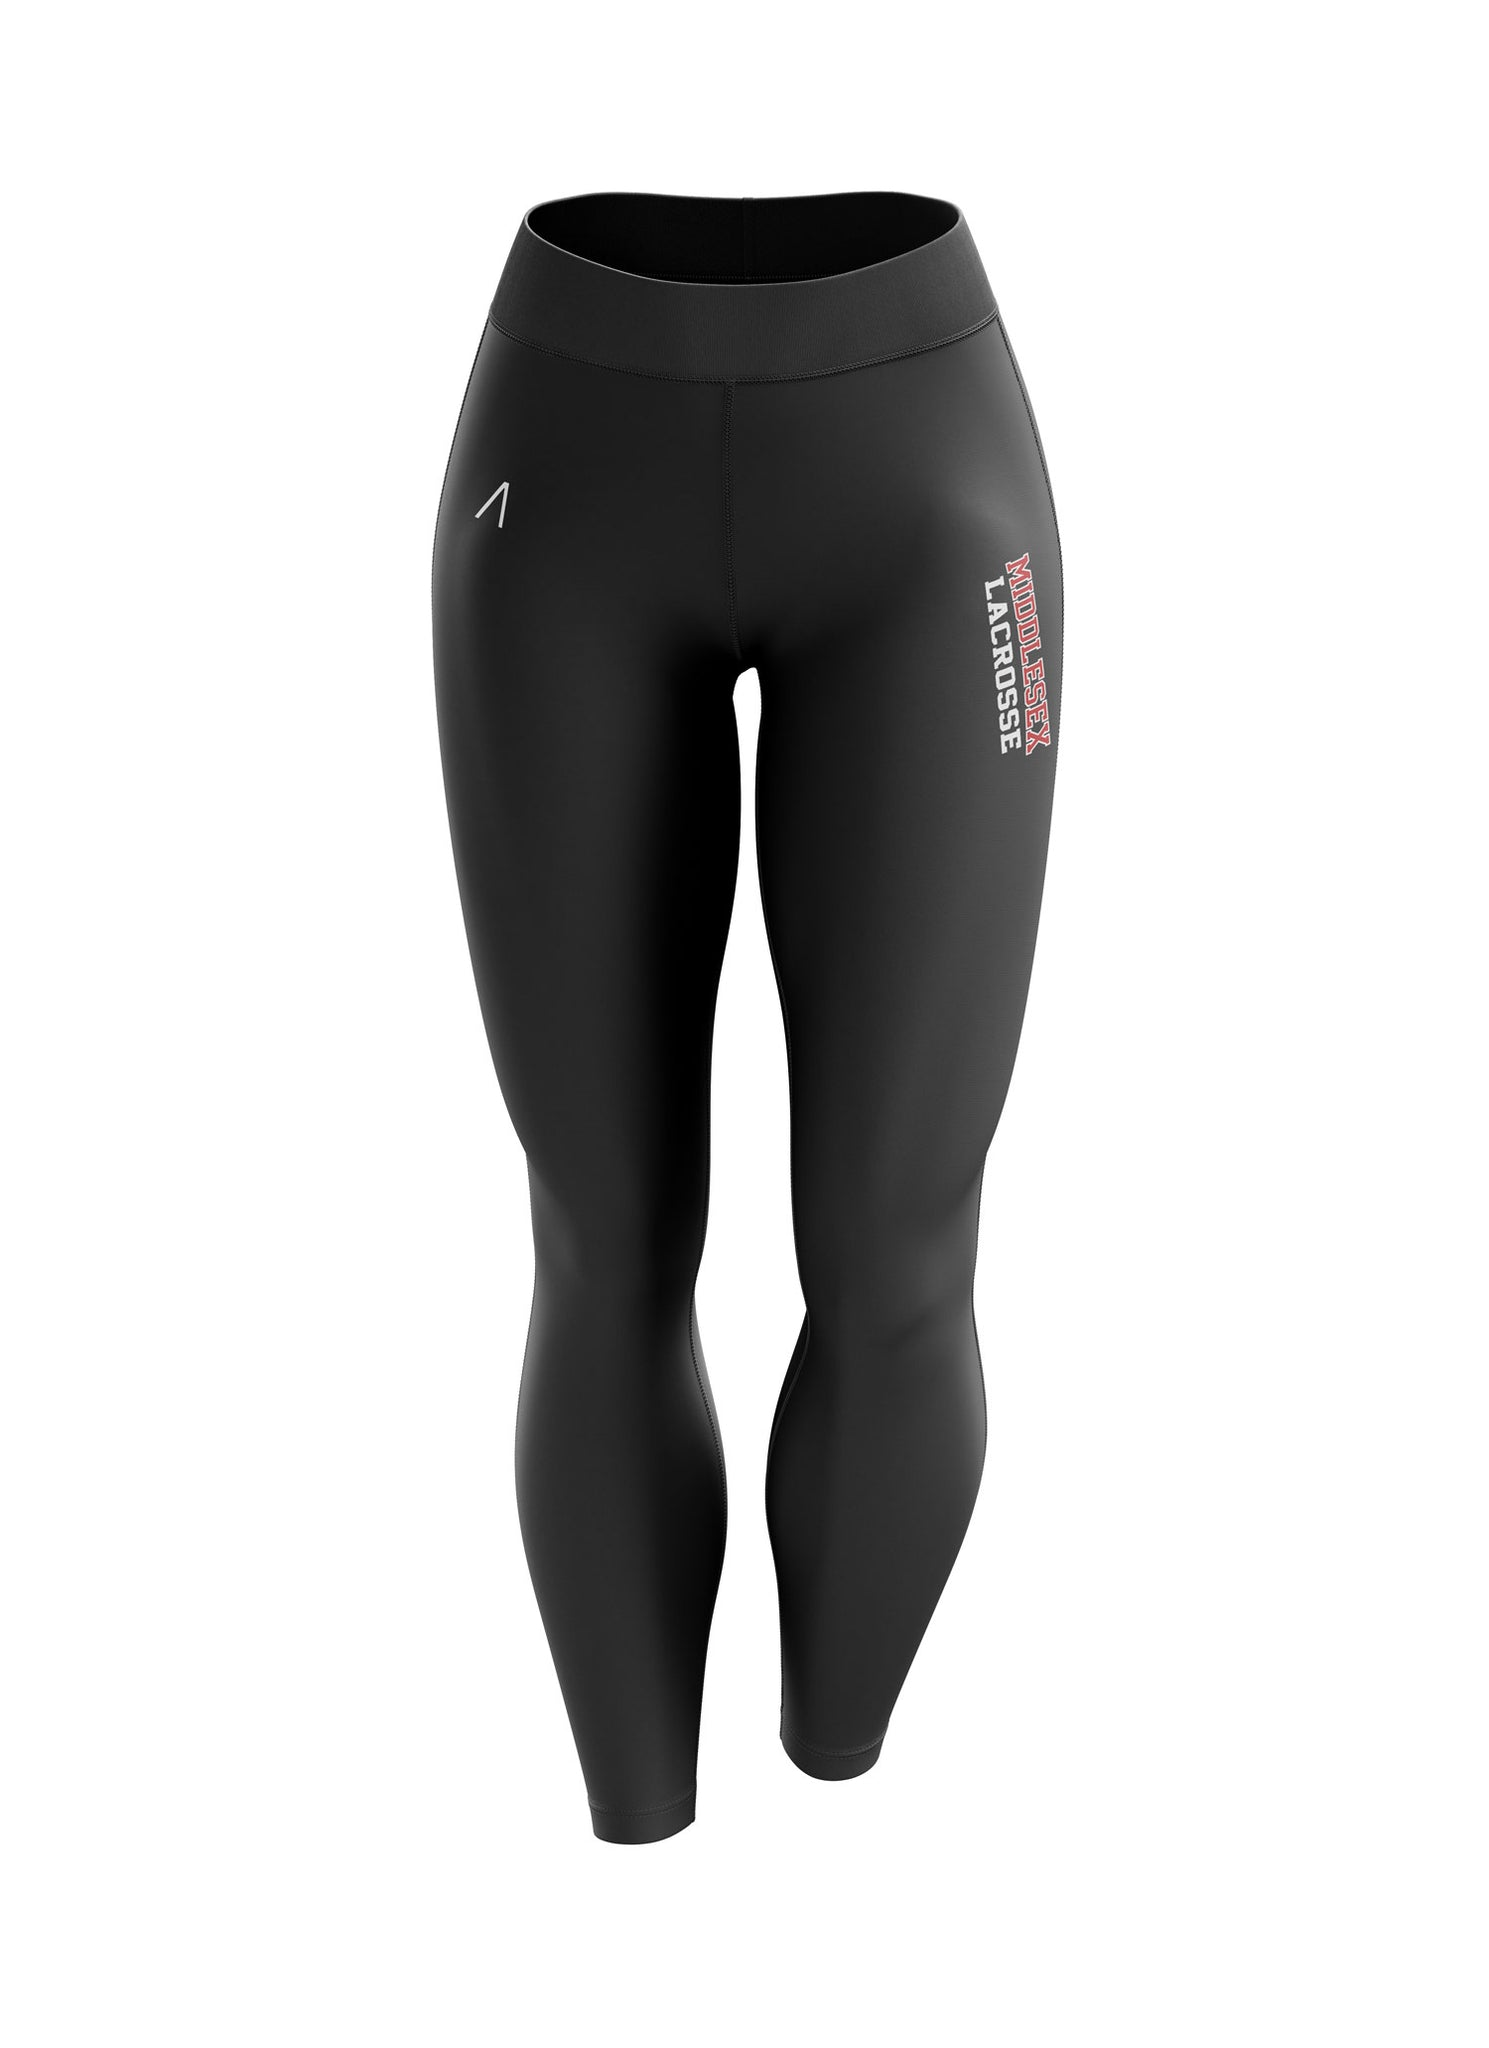 Middlesex Women's Leggings